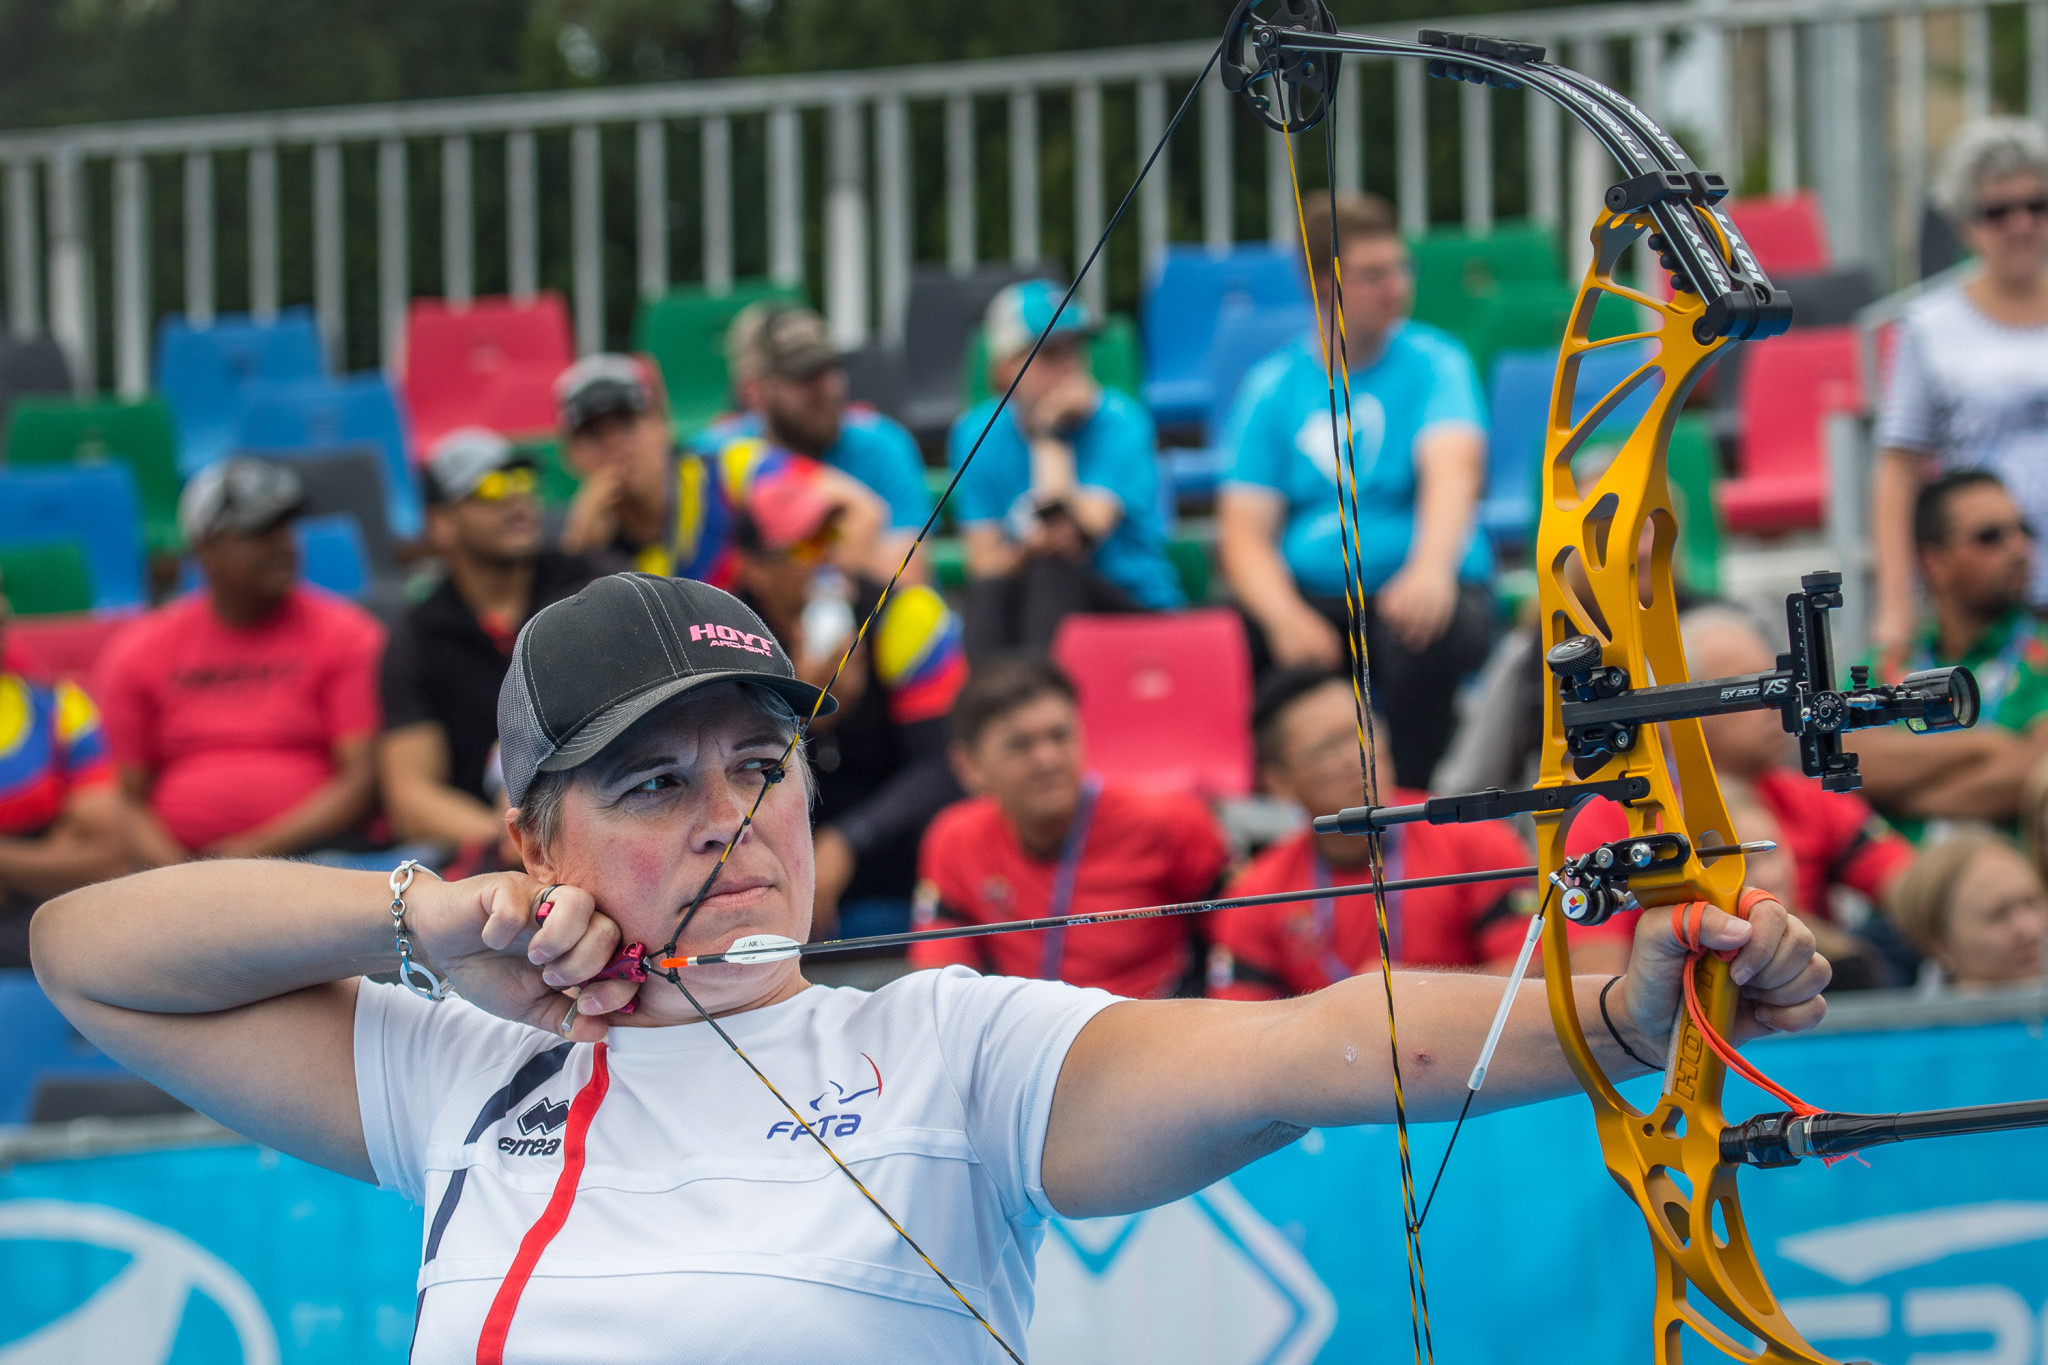 Dodemont and Schloesser win compound titles at World Archery Indoor Series in Luxembourg